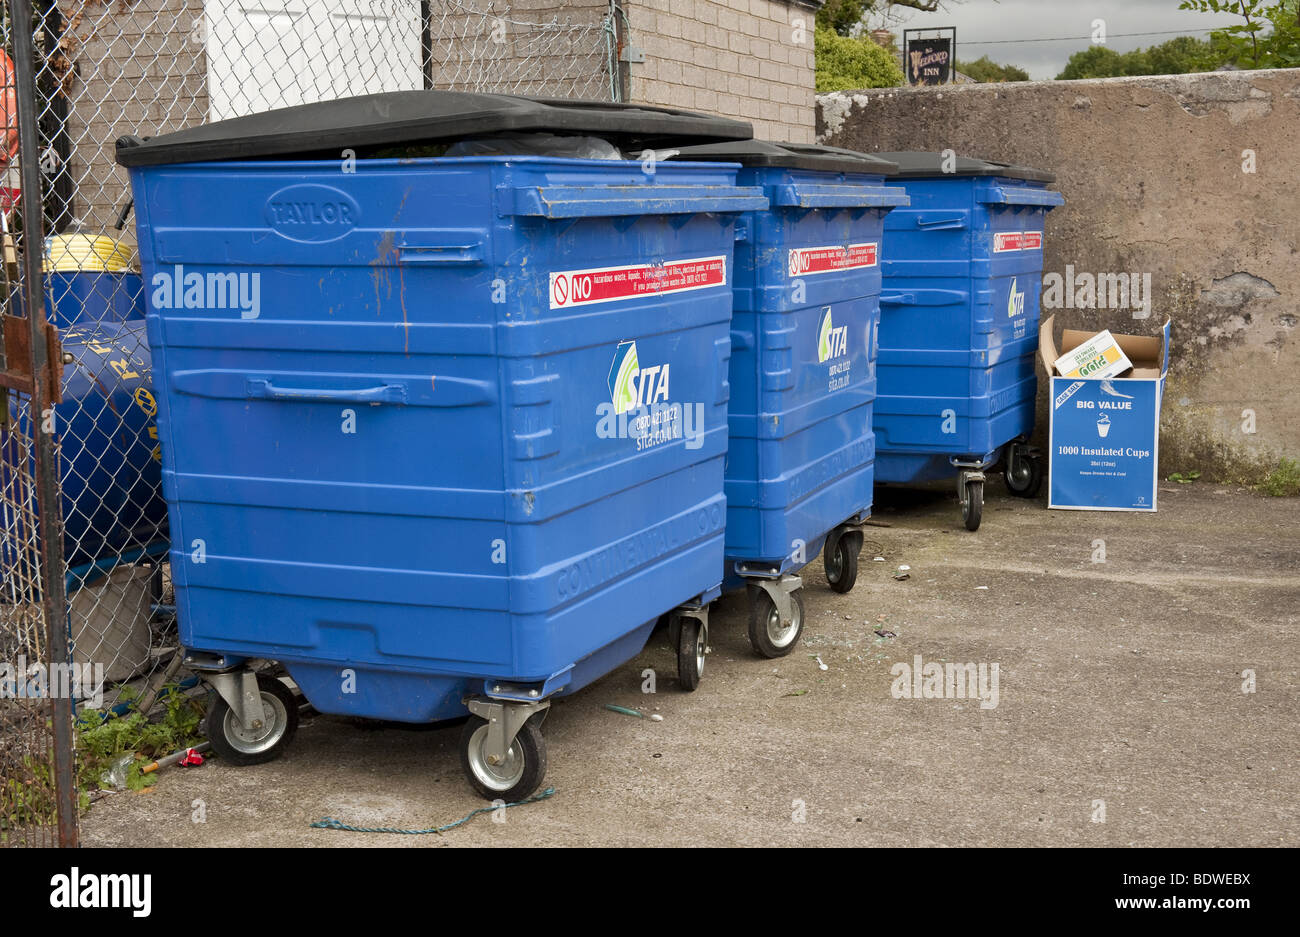 Industrial Garbage Containers : Three large blue plastic commercial wheelie bins full of